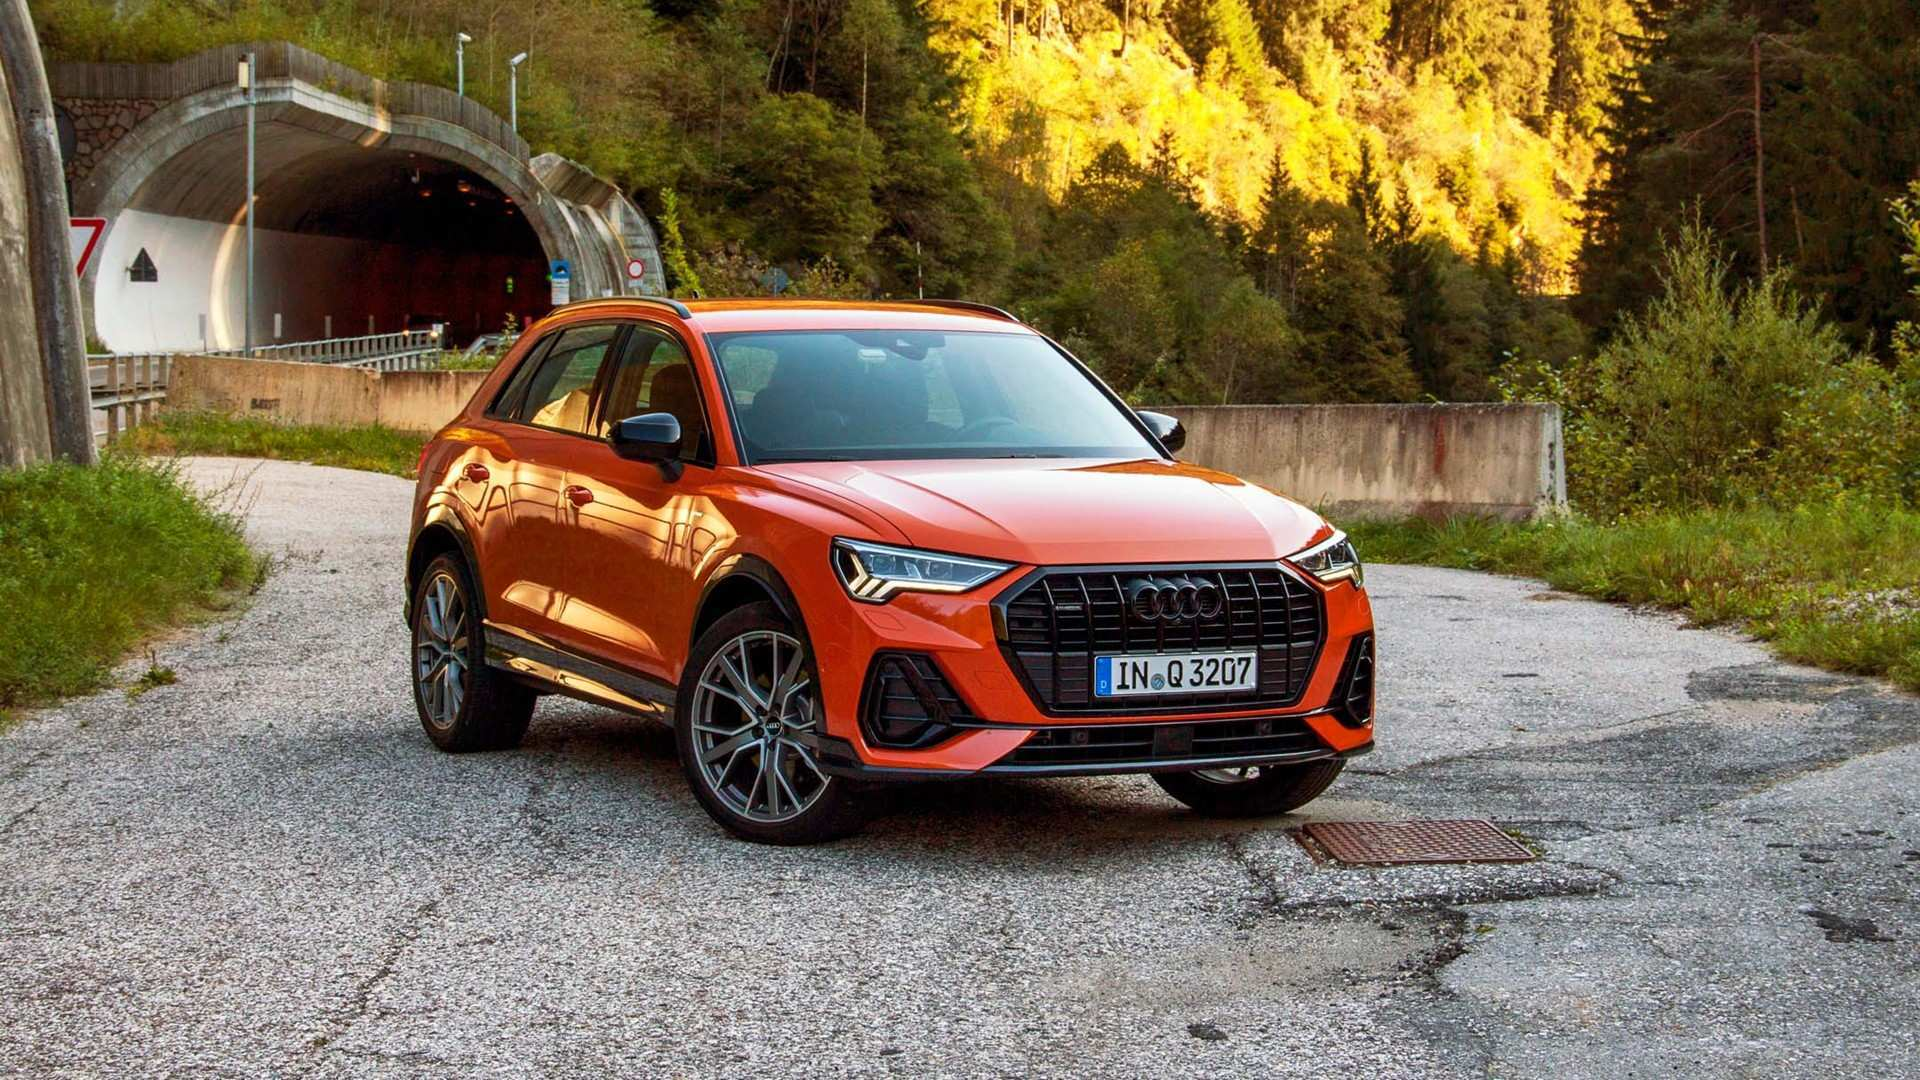 74 Gallery of 2019 Audi Q3 Release Date Wallpaper for 2019 Audi Q3 Release Date